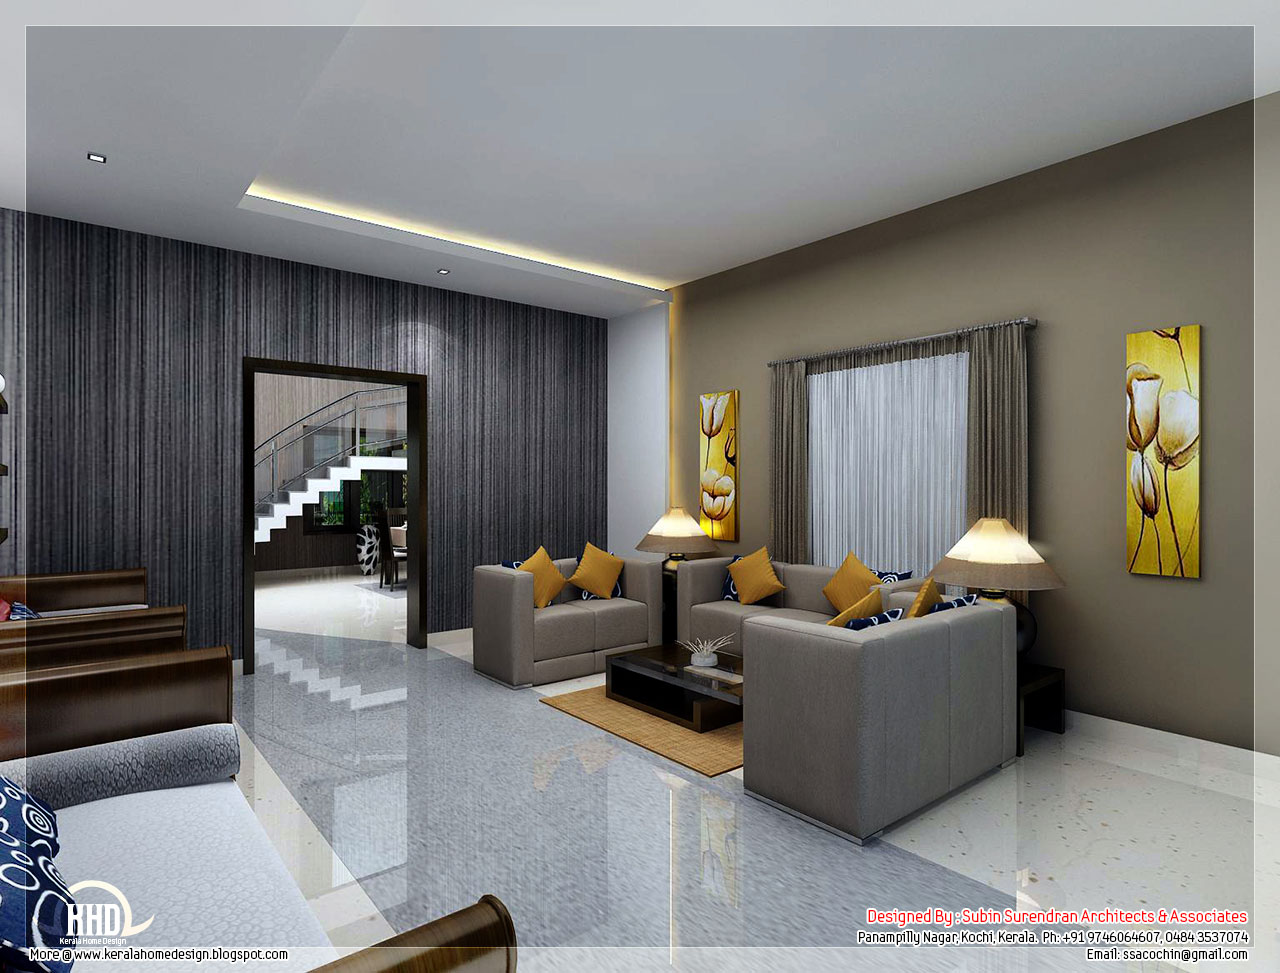 Awesome 3d interior renderings kerala home design and for Indian interior design ideas living room